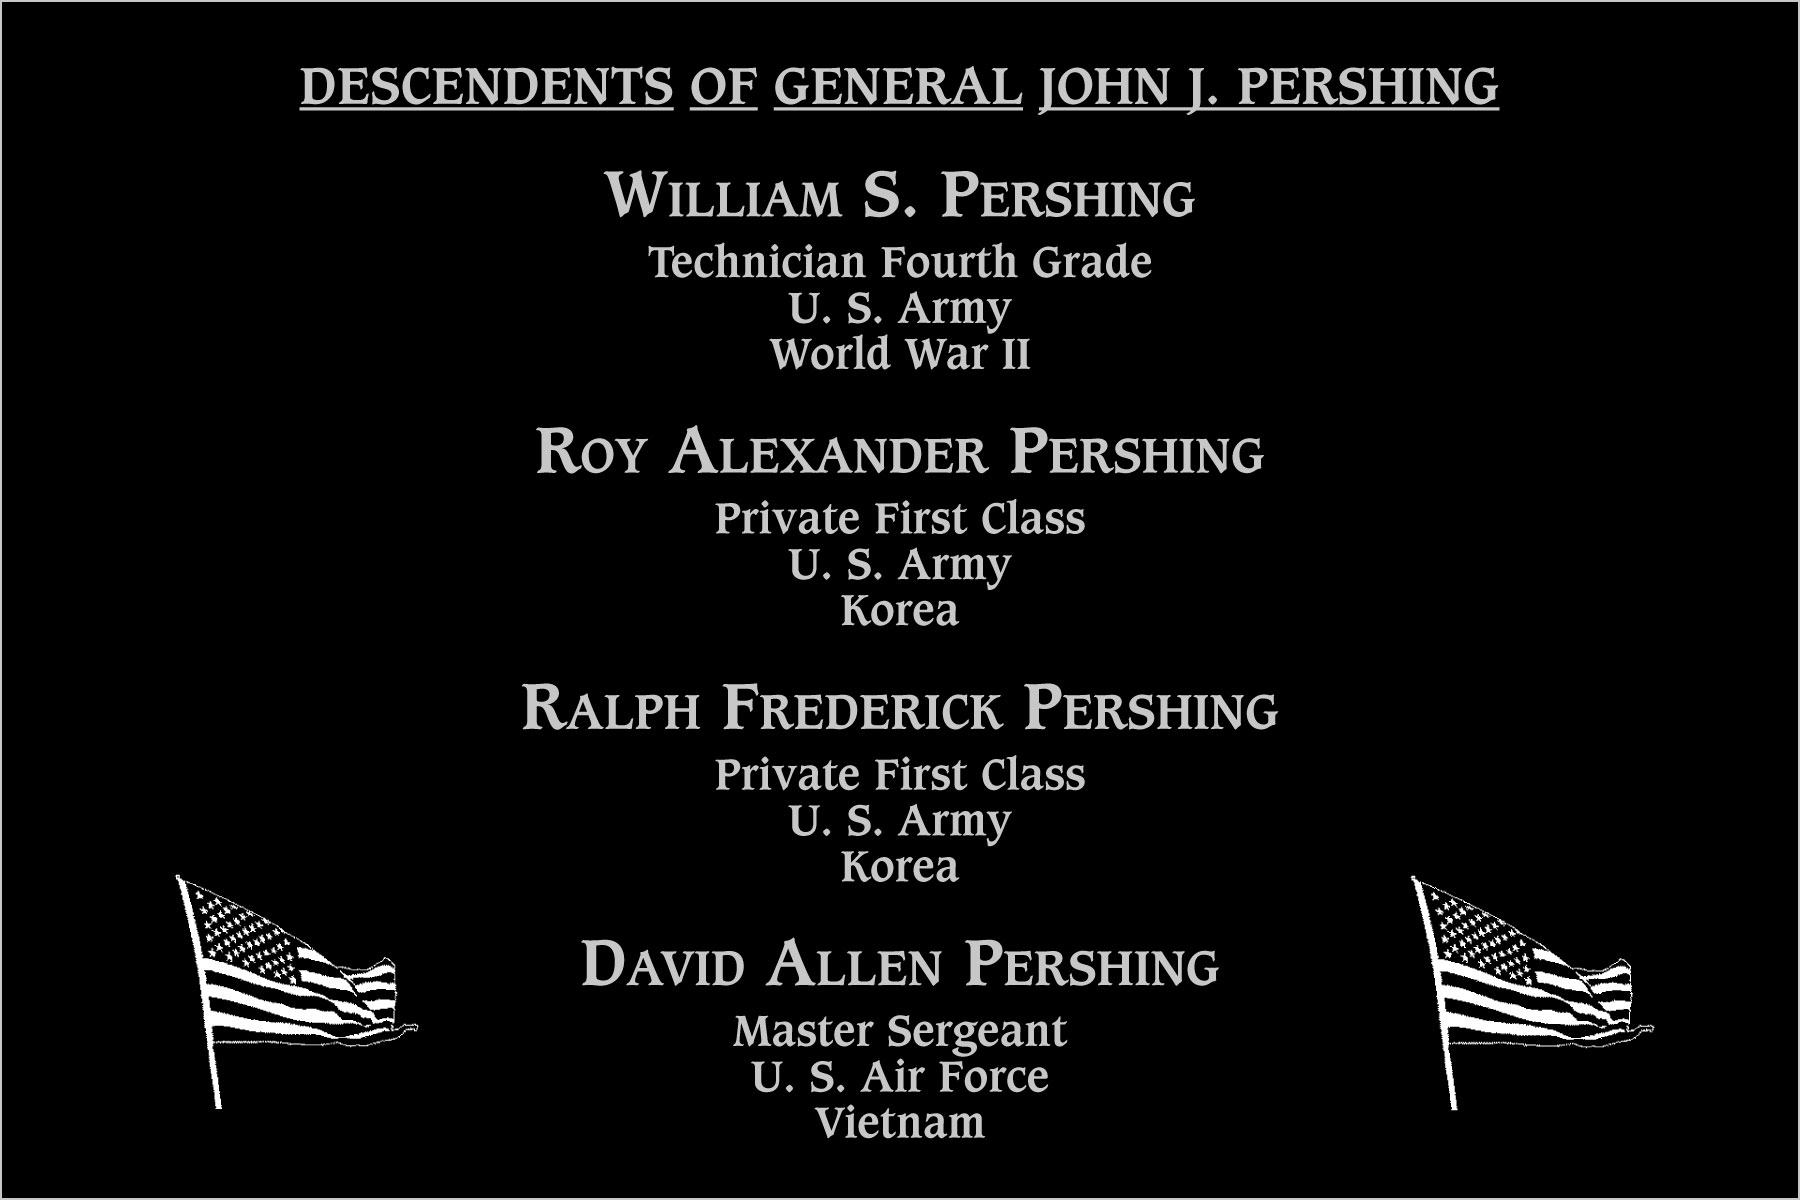 Descendents of Pershing